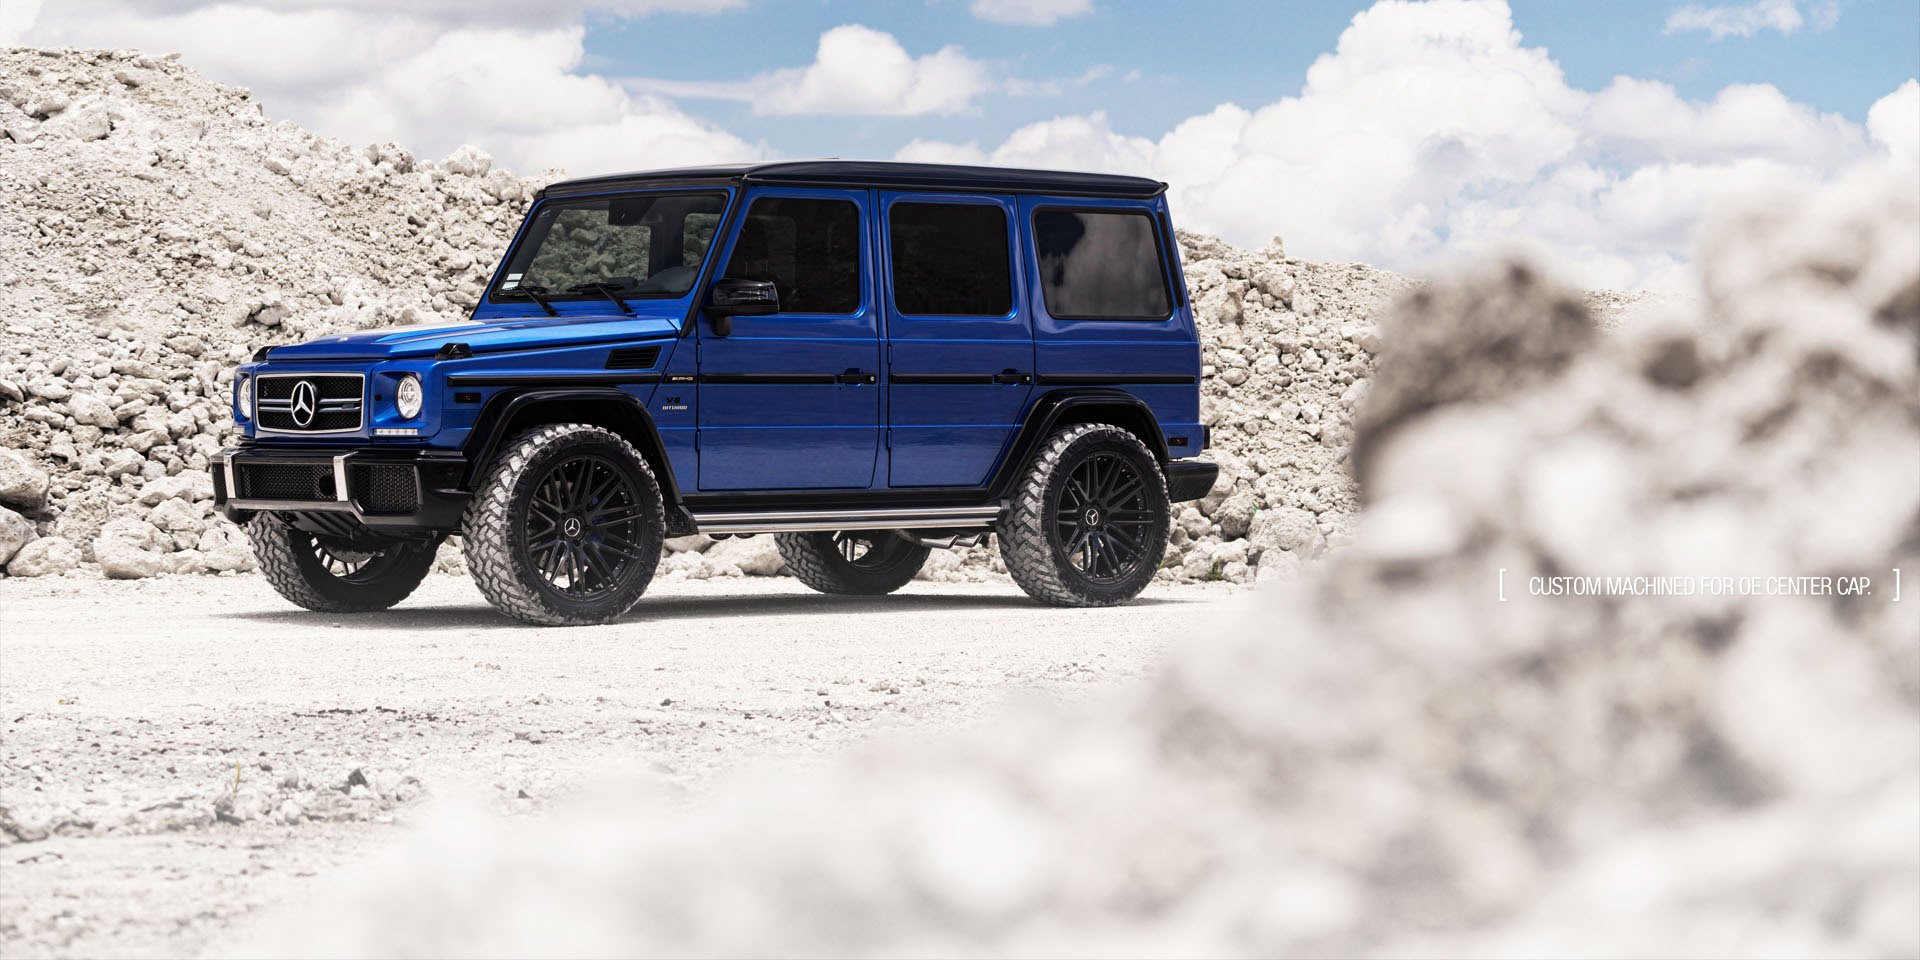 Mercedes G63 AMG forged concave black wheels